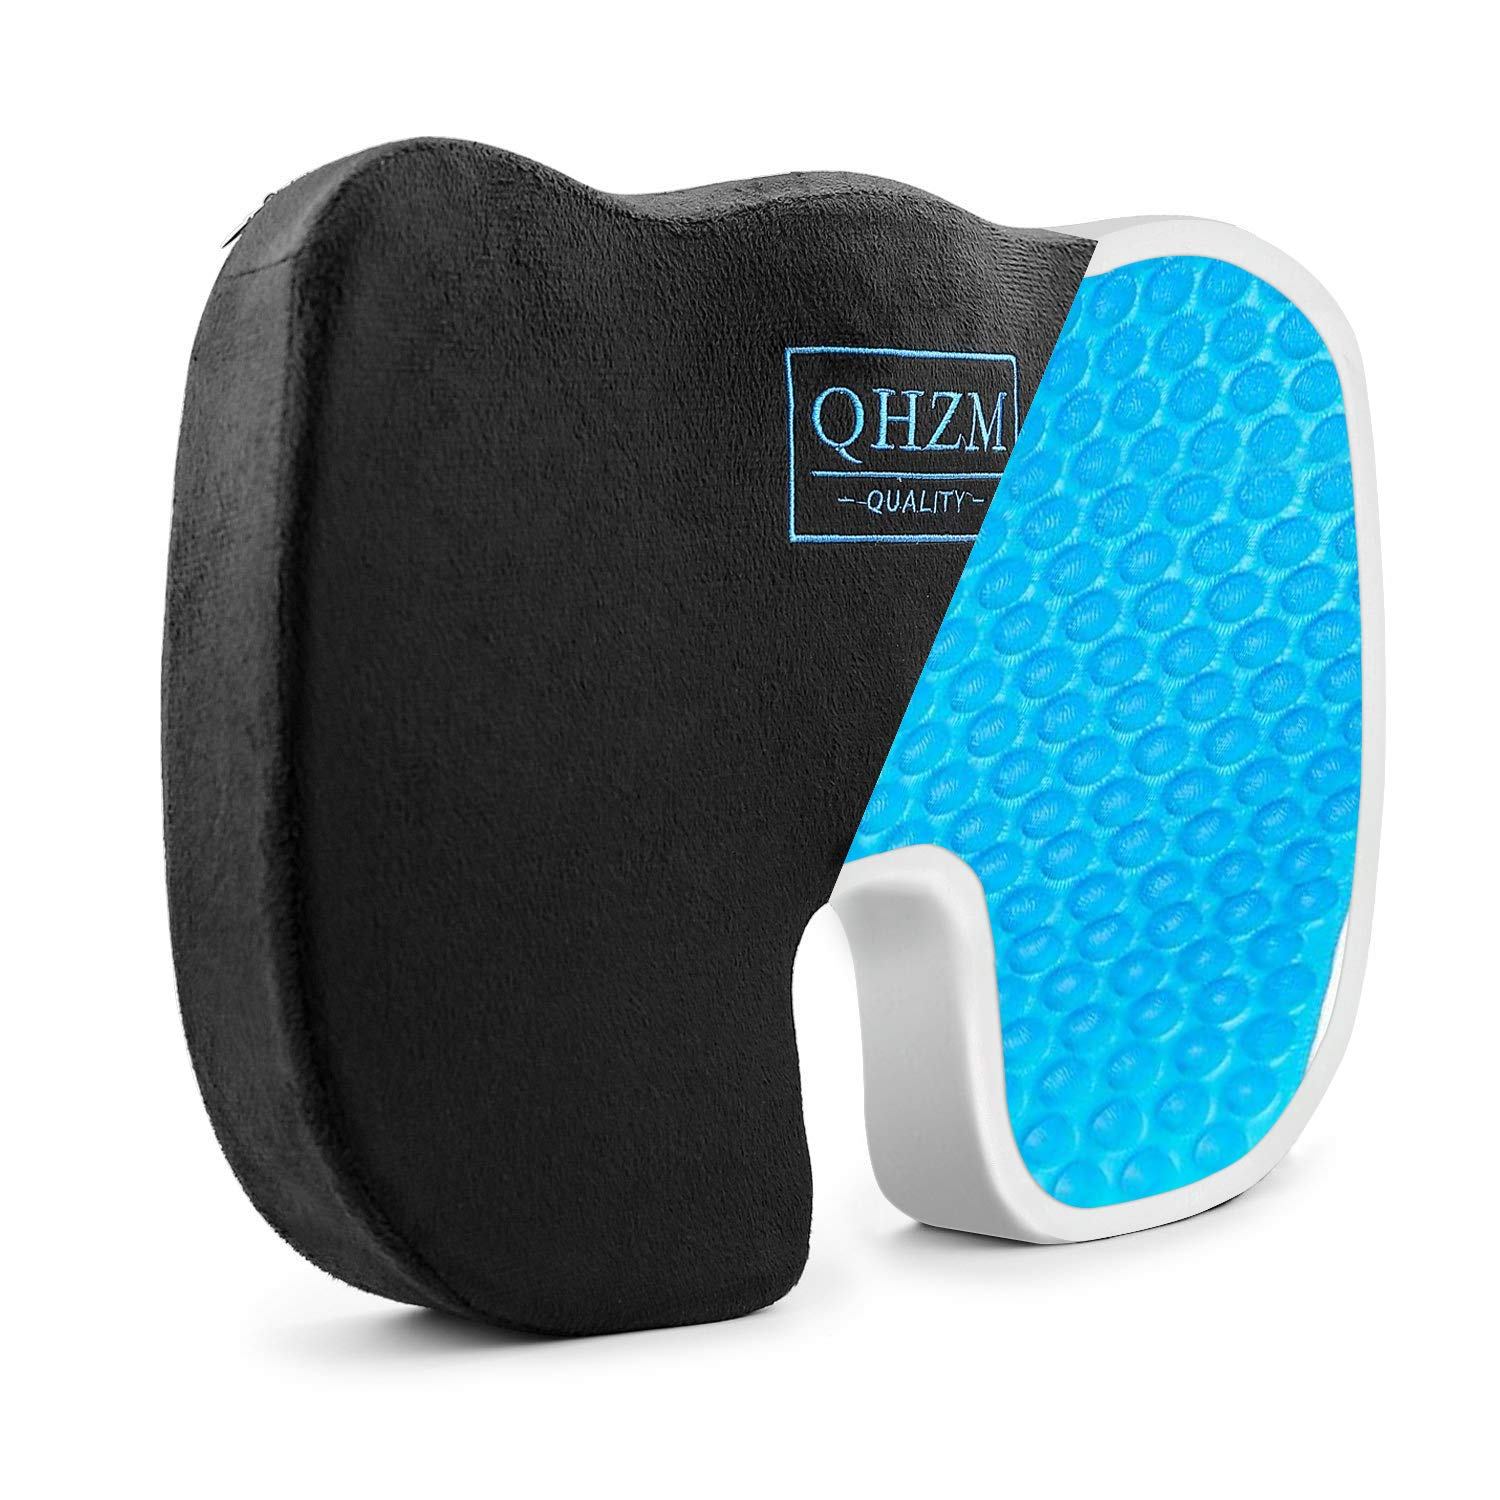 Memory Foam Seat Cushion for Car/Office Chair, Ventilated Orthopedic Seat Cushions to Relieve Back Sciatica Tailbone Pain, Great Gifts for Drivers/Office